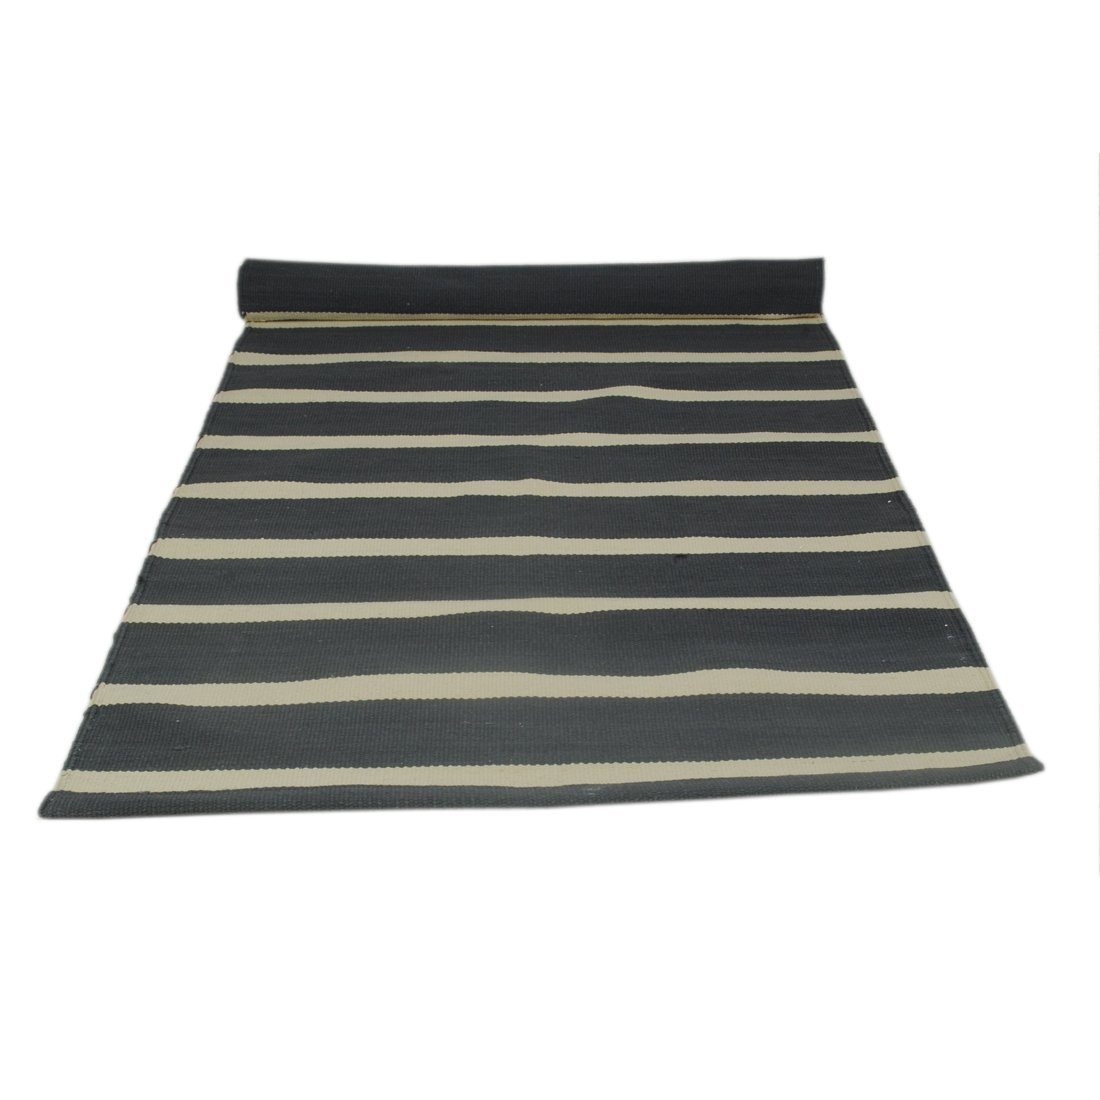 Organic cotton mat for Yoga Fitness and Meditation-Black/&White Striped Pilates